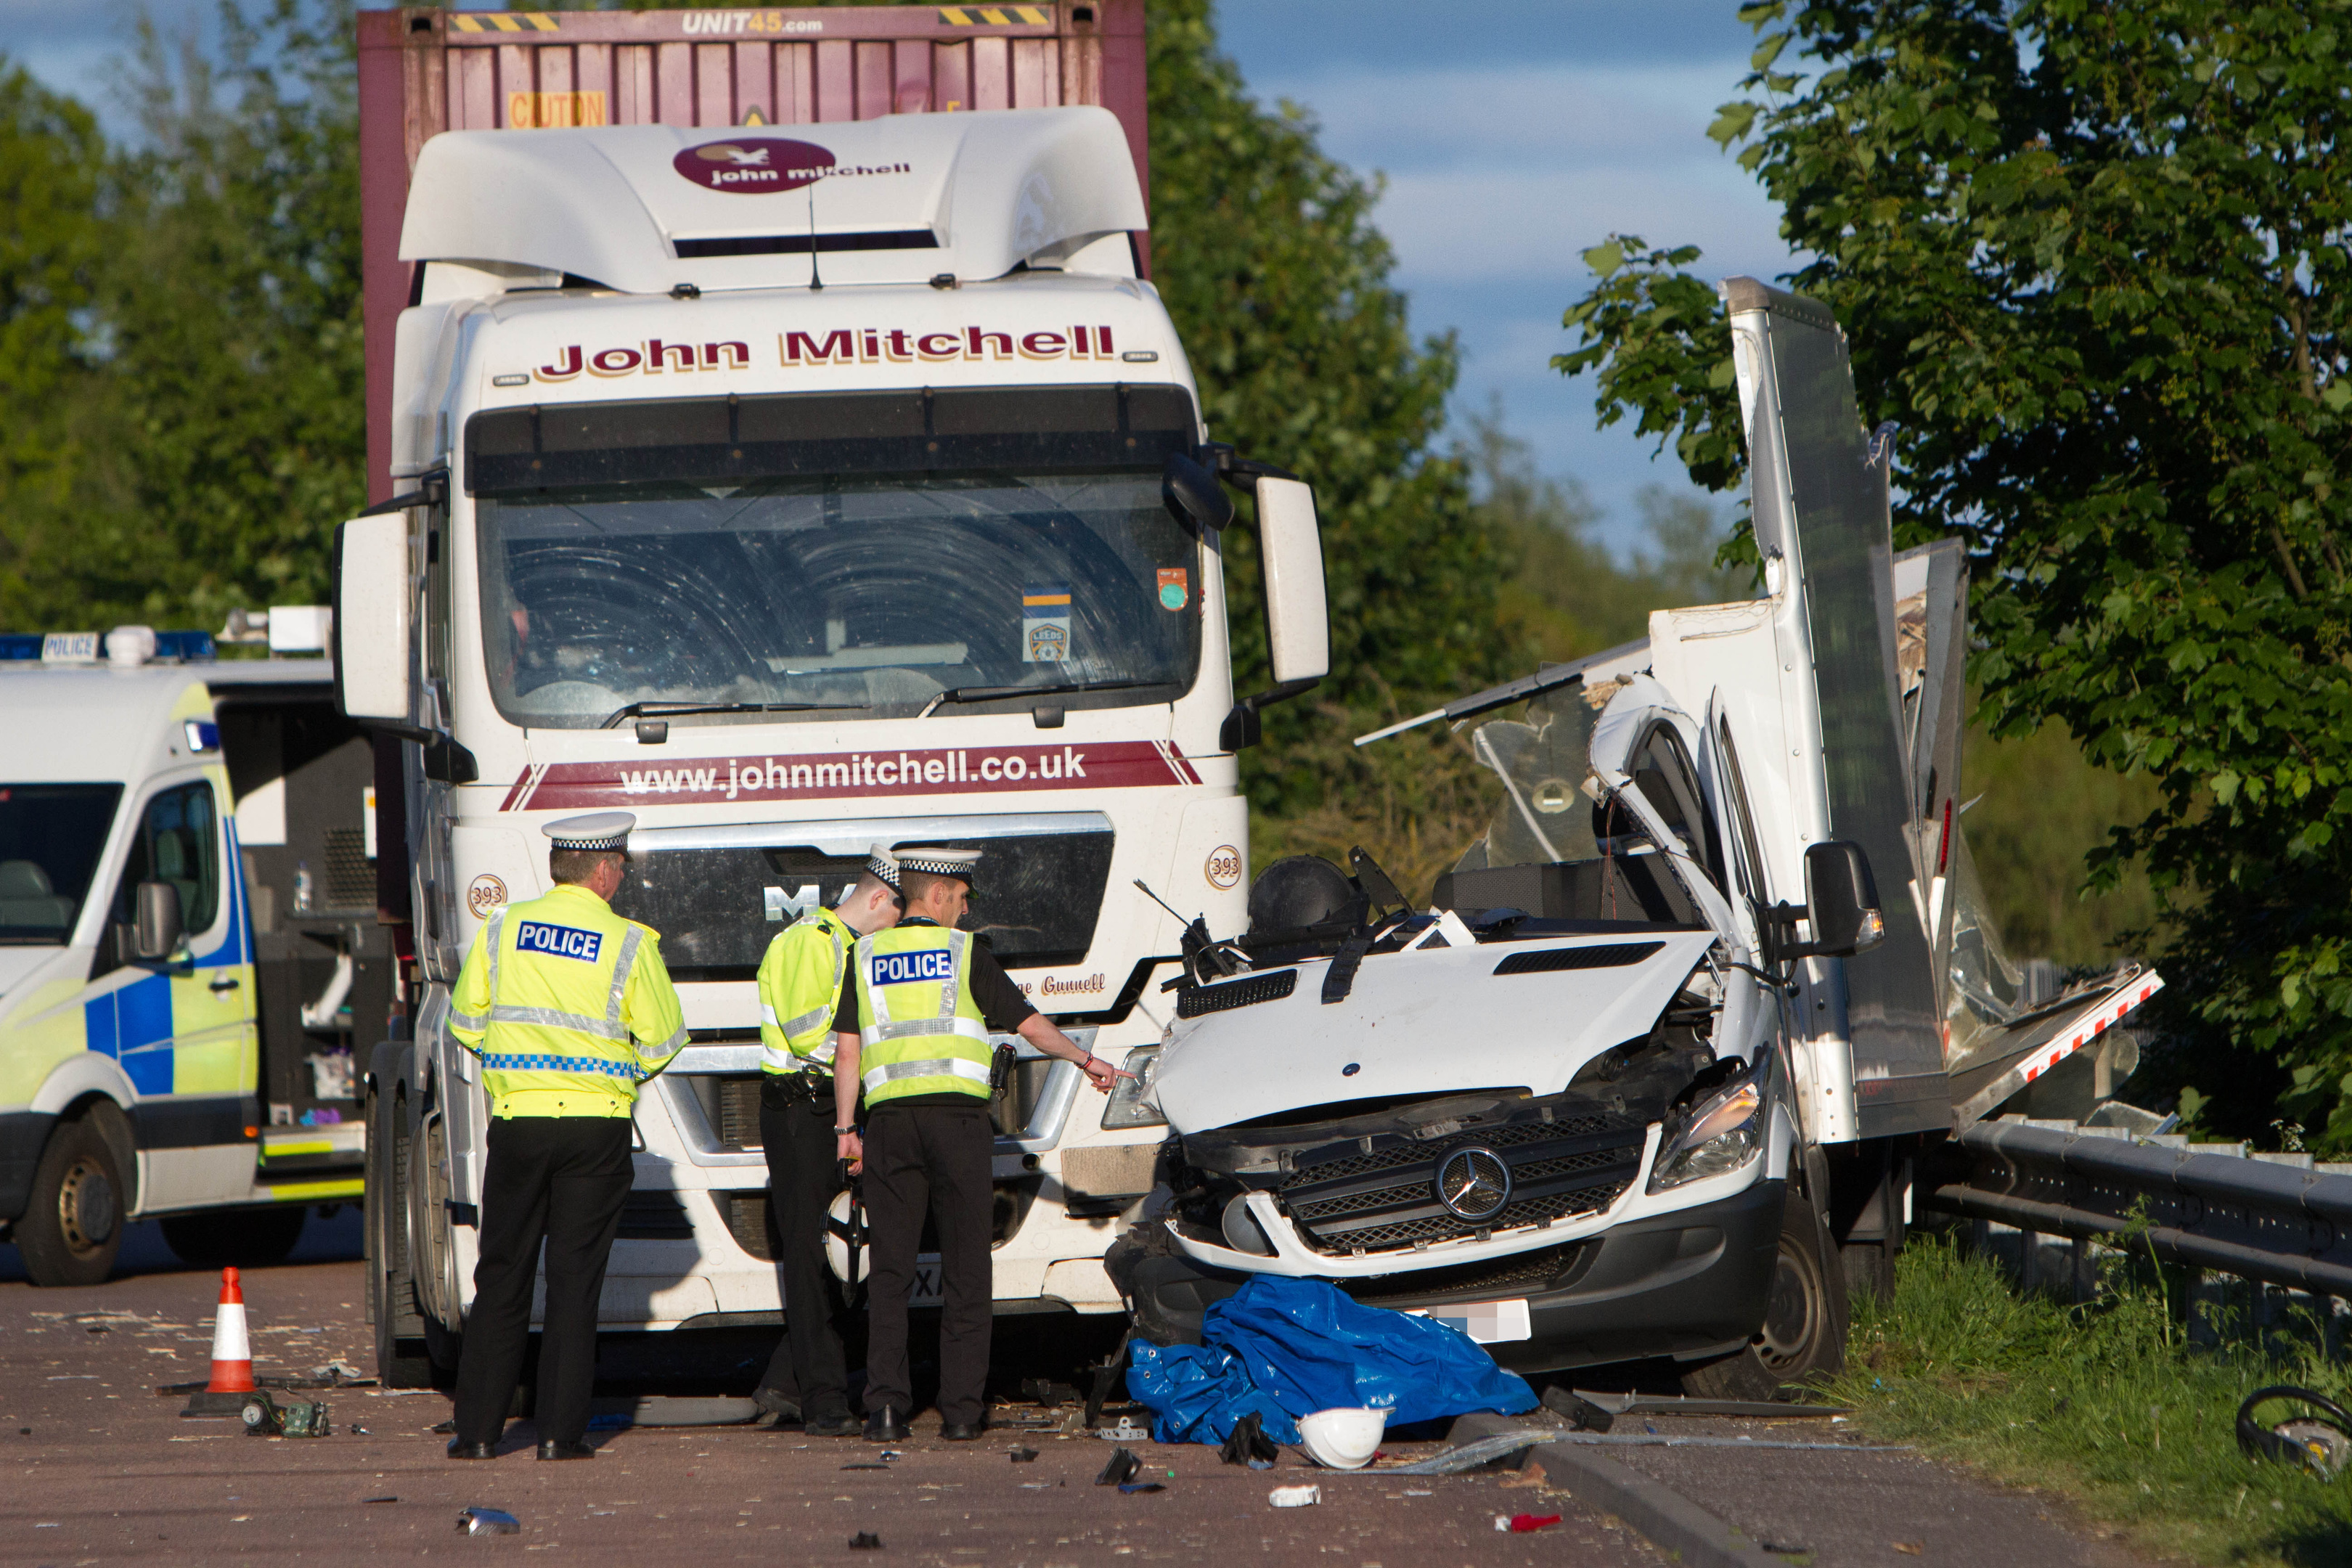 The Mercedes Sprinter van came to rest between the lorry cab and the crash barrier.